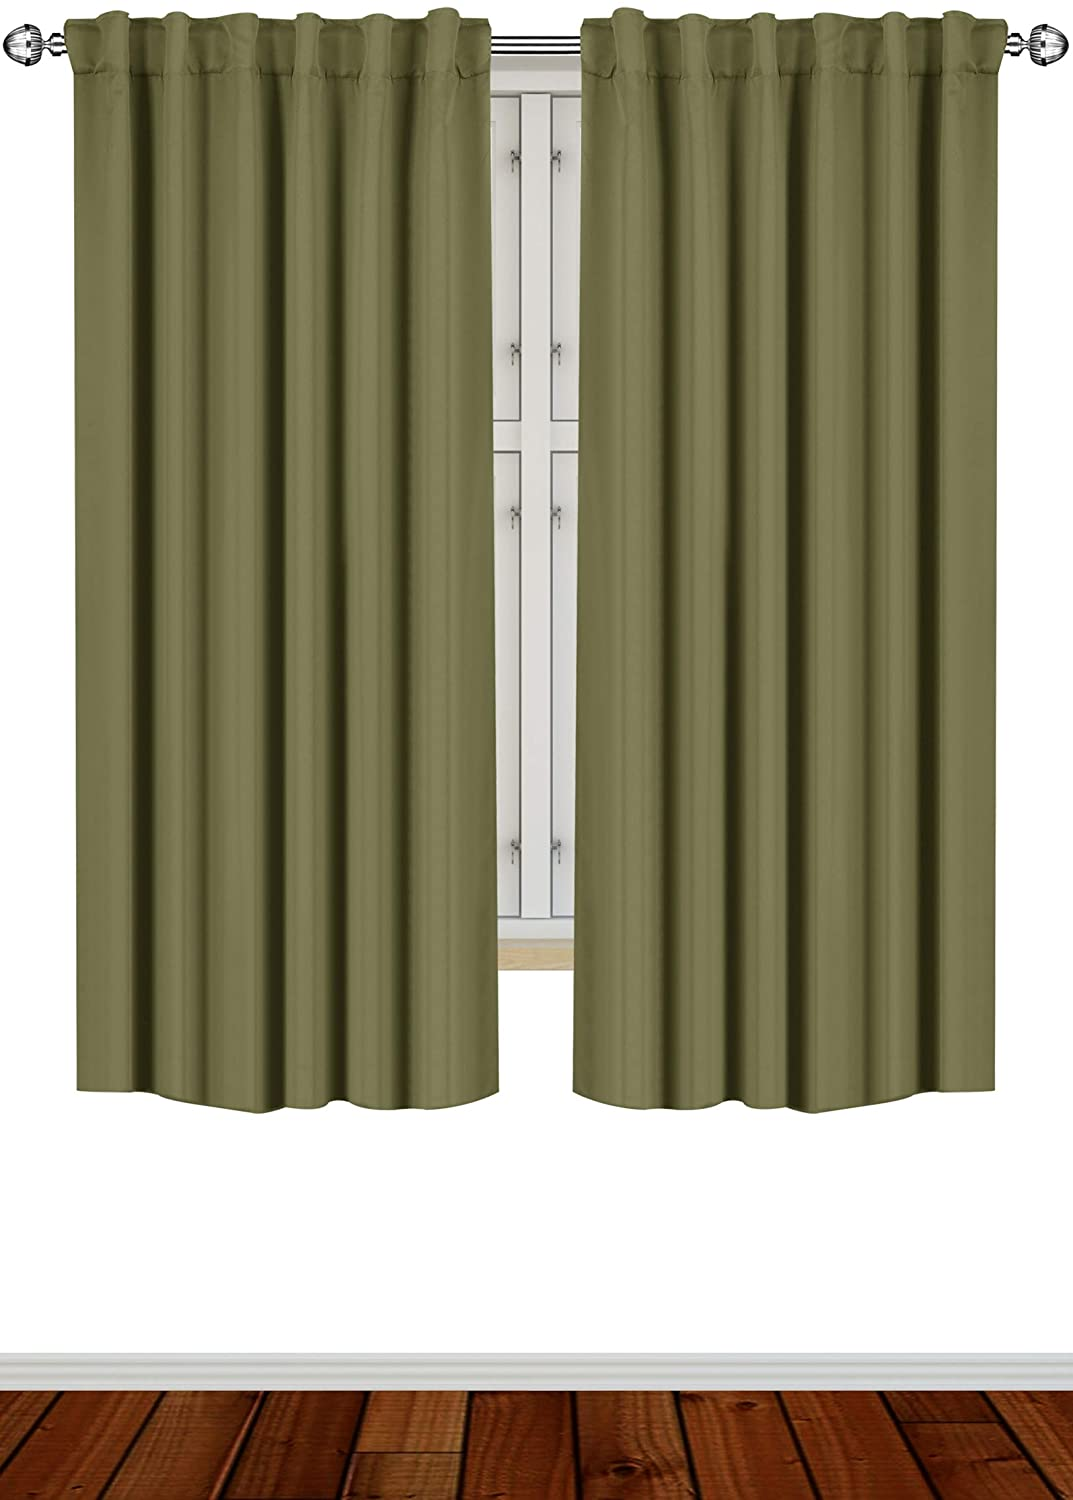 Utopia Bedding 2 Panels Blackout Curtains, W52 x L63 Inches, Olive, Thermal Insulated Window Draperies - 7 Back Loops per Panel - 2 Tie Backs Included